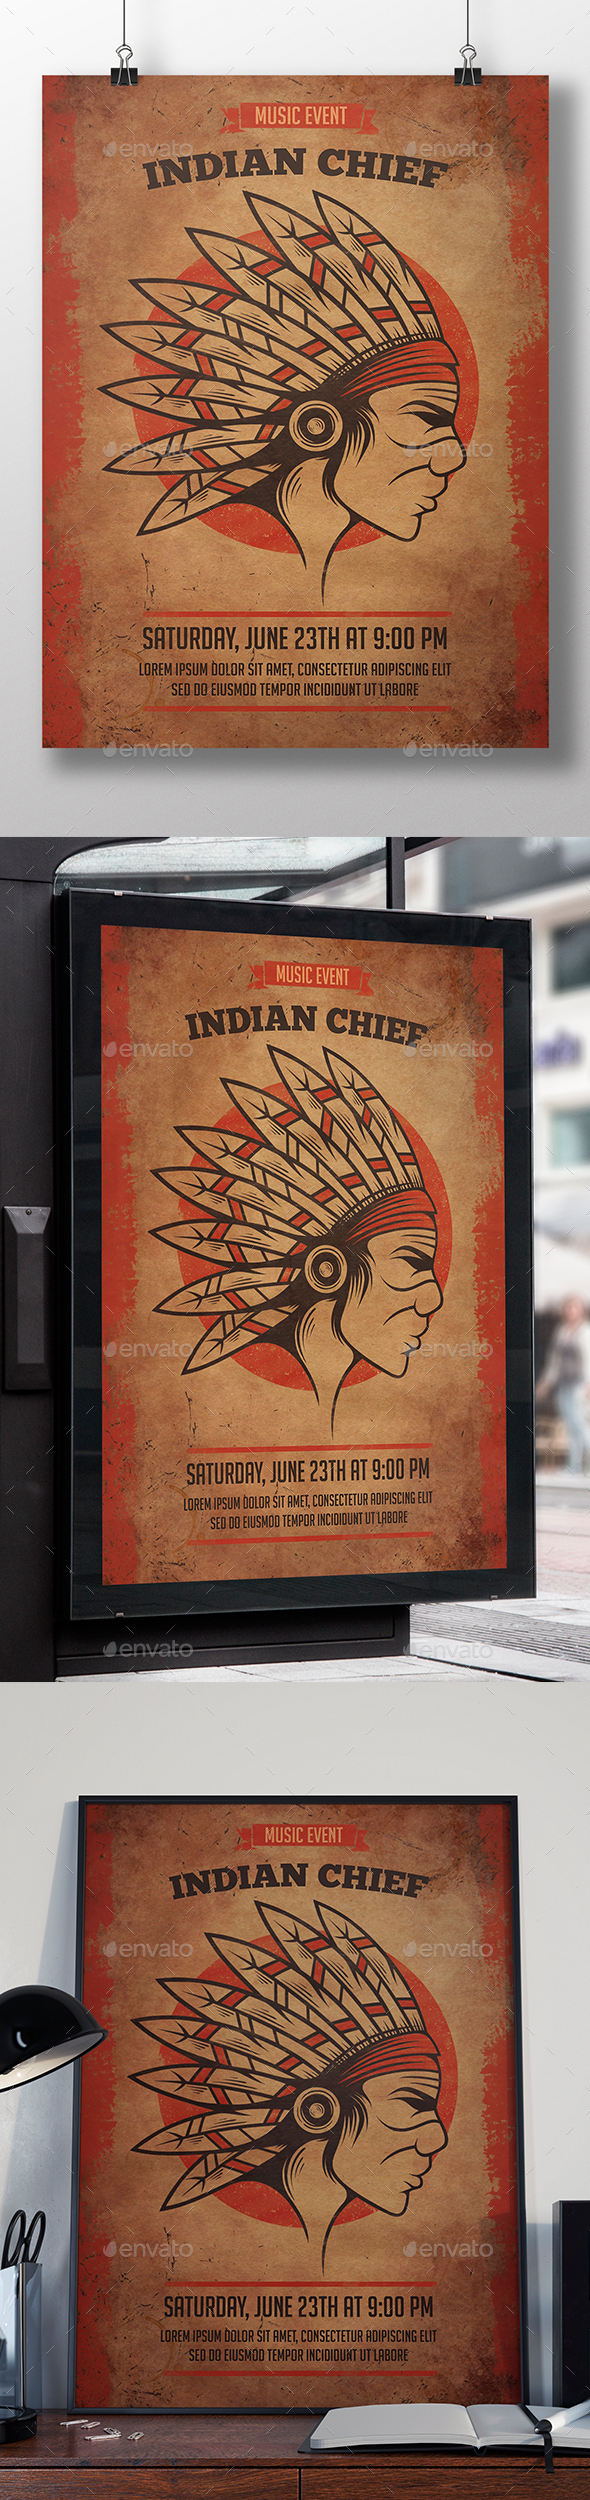 Indian Chief Flyer Template - Miscellaneous Events